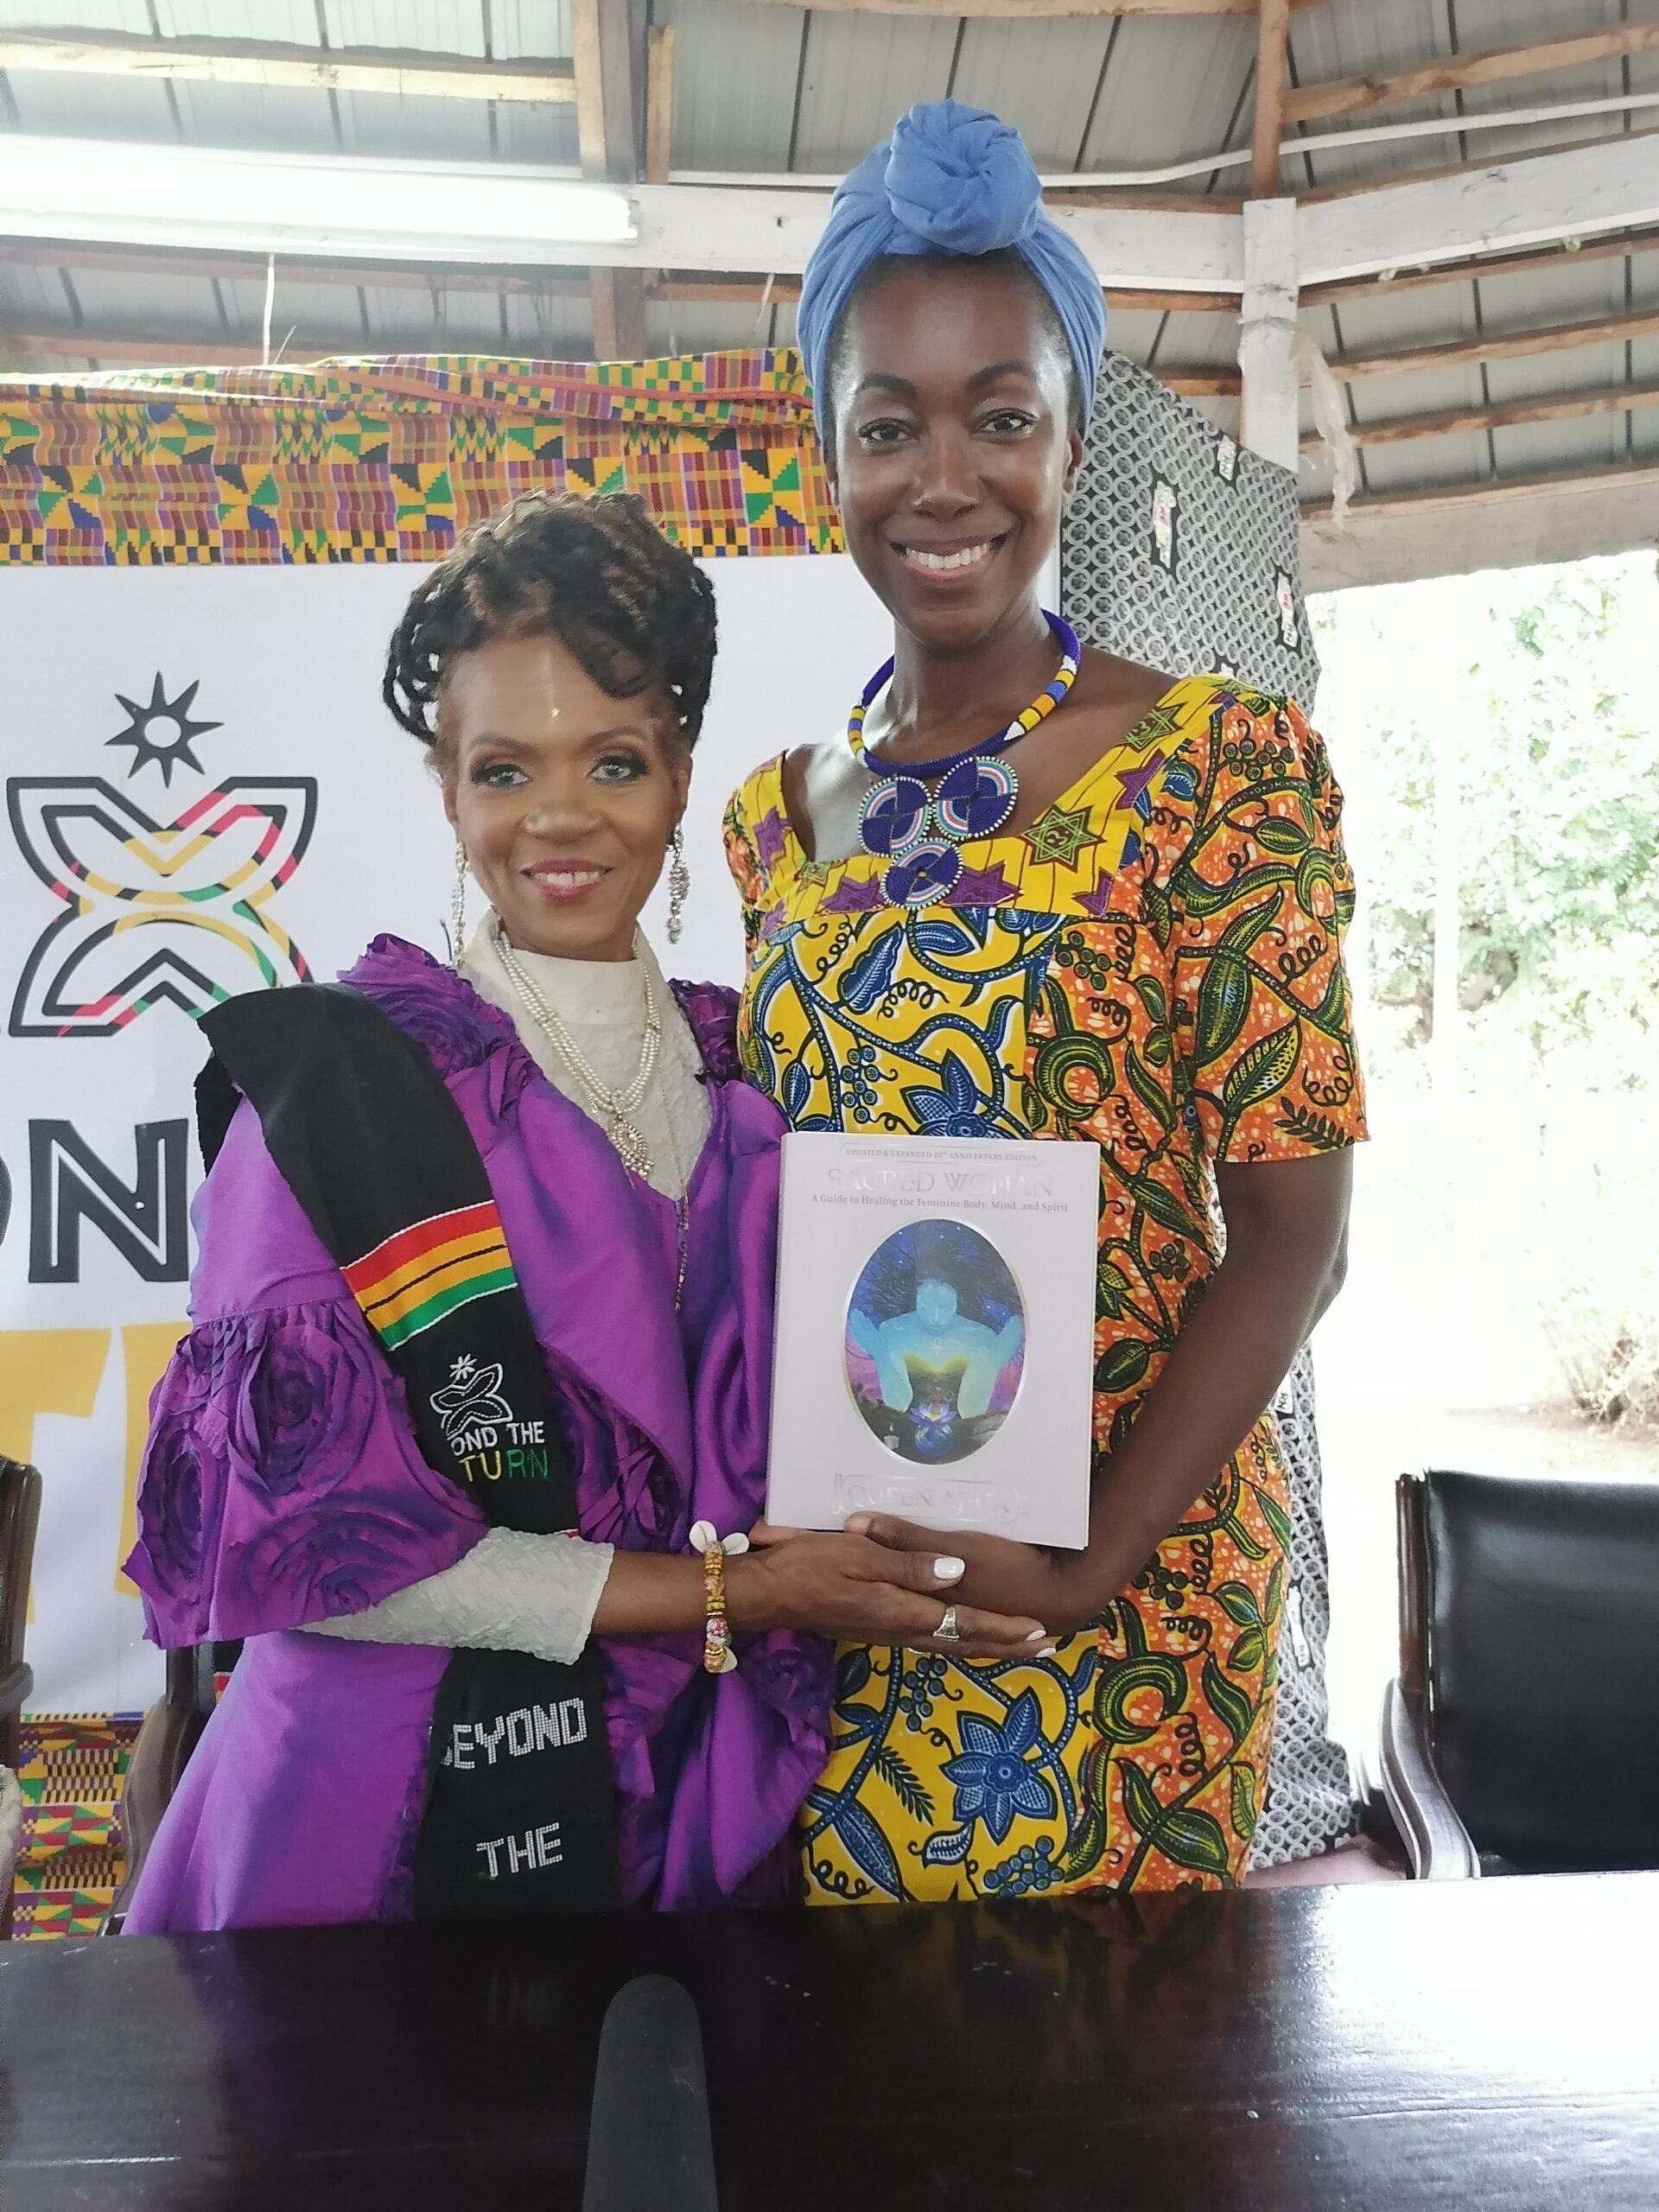 'We Must Go Back to How it Was Before' says Queen Afua